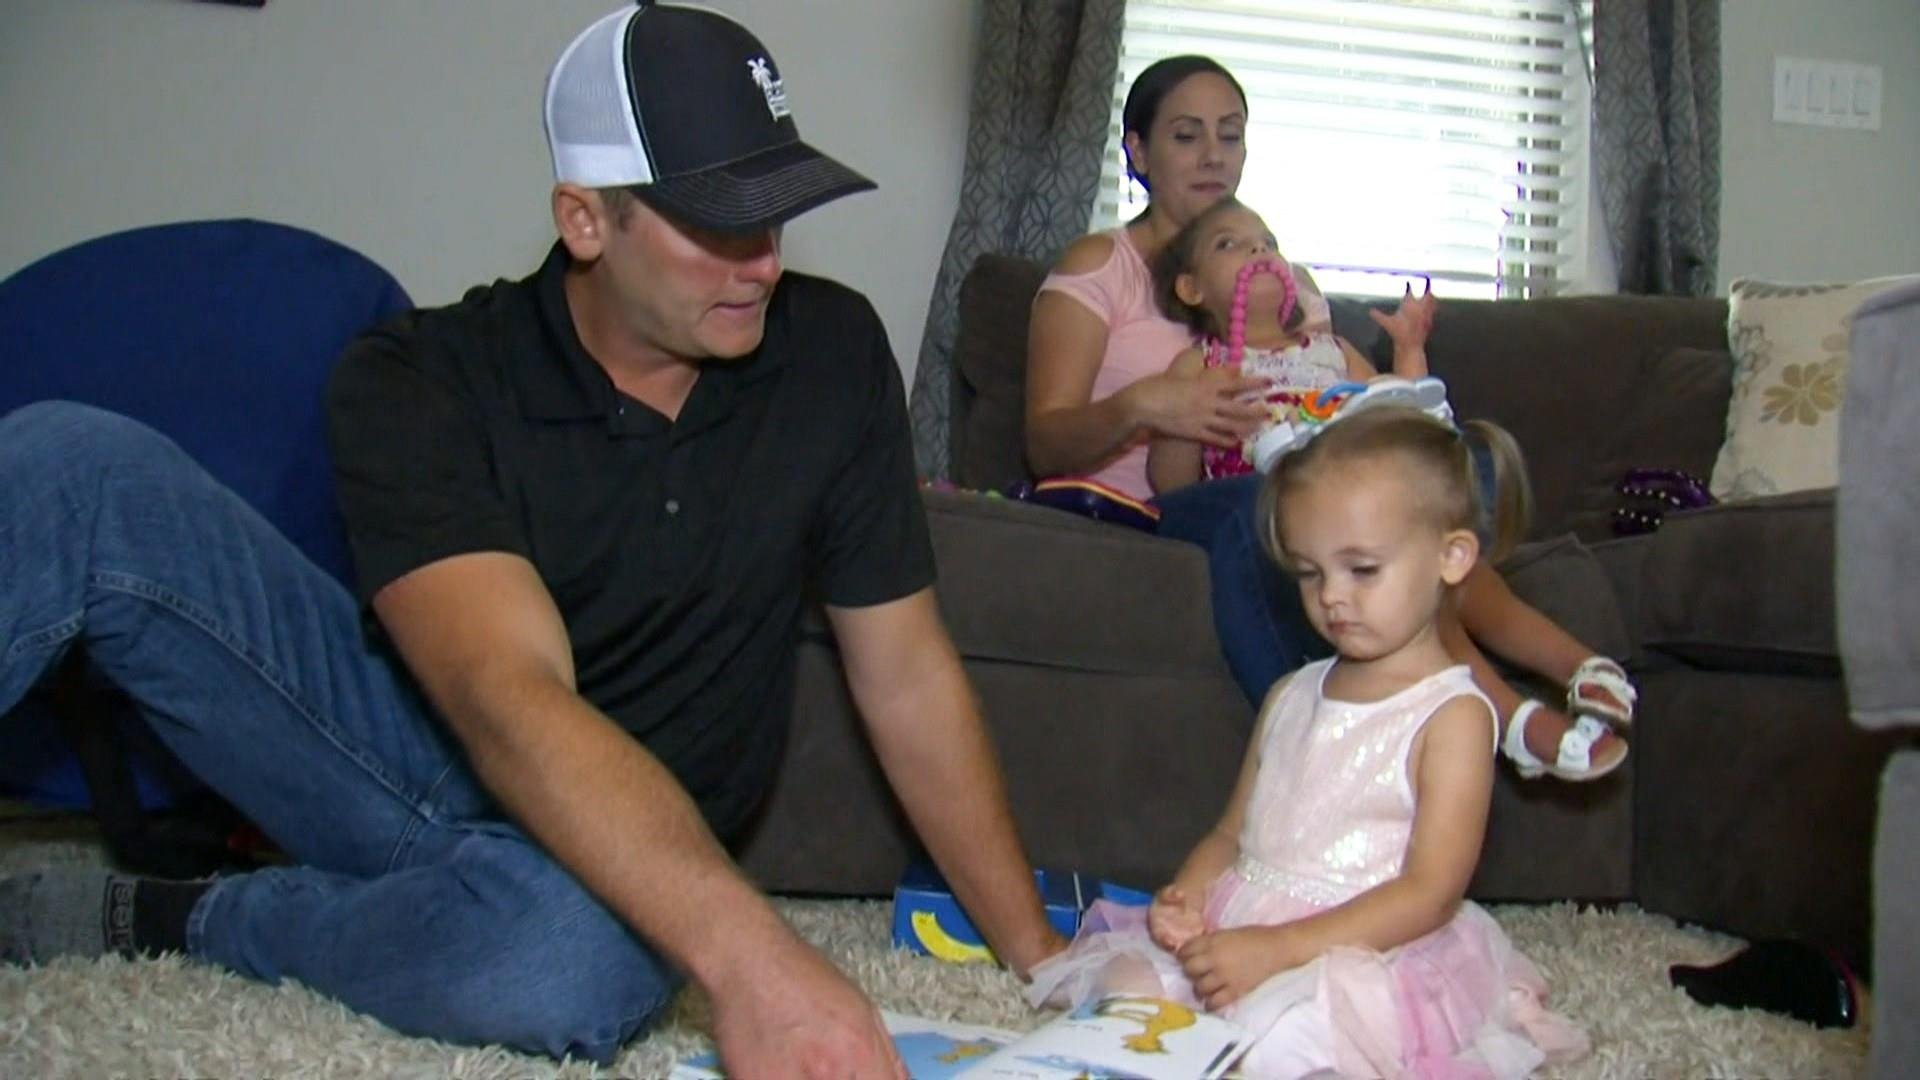 Texas family considers divorce to pay for daughter's healthcare bills